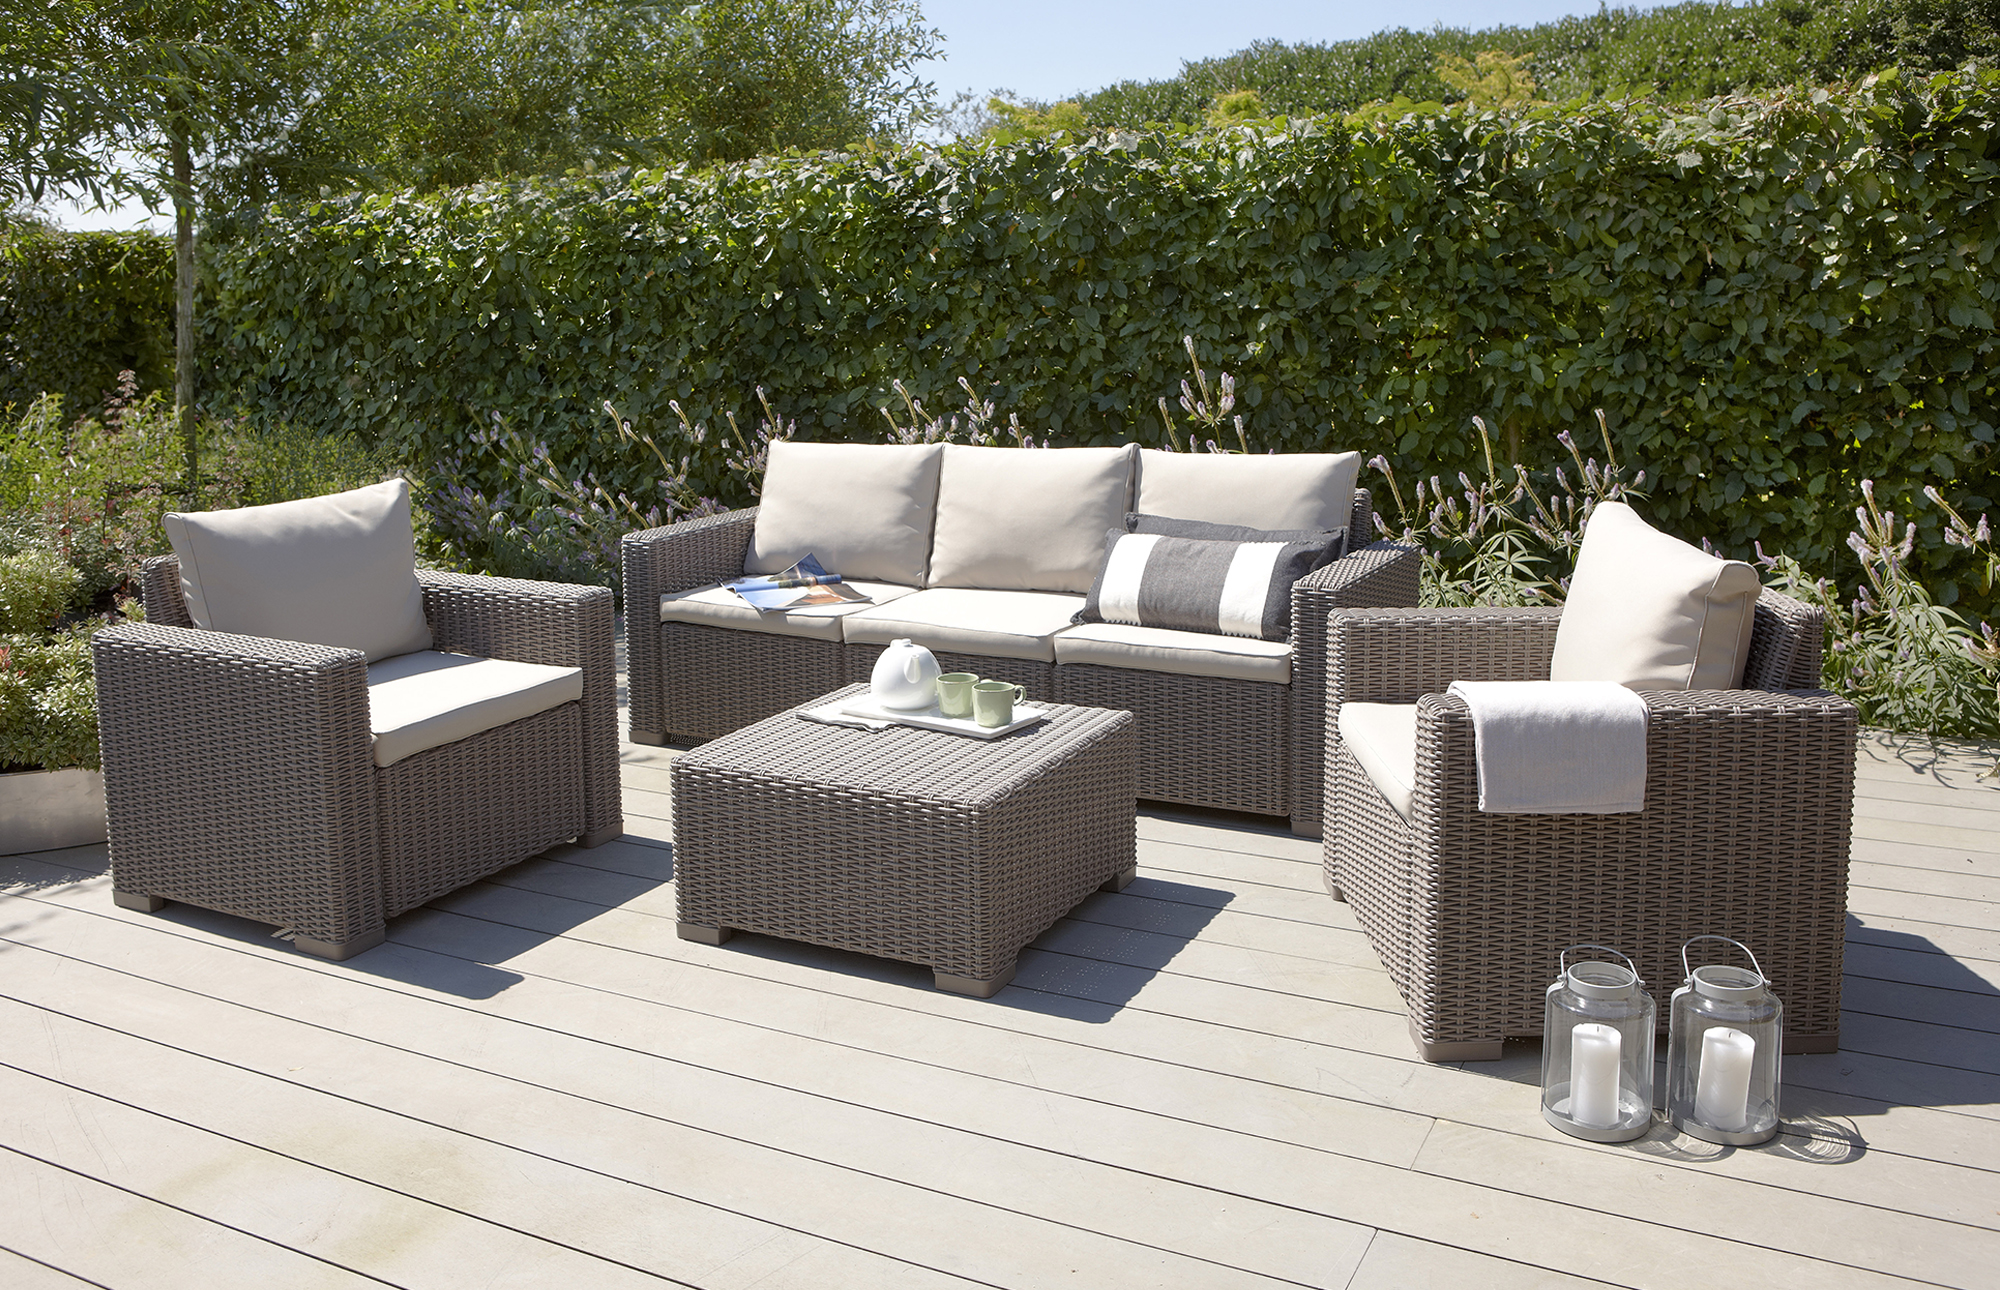 outdoor rattan furniture garden-furniture-rattan-sets-breathtaking-rattan-garden-furniture-bistro- sets-breathtaking-outdoor-patio-furniture-covers - rattan garden furniture  sets ... PMNXQMJ